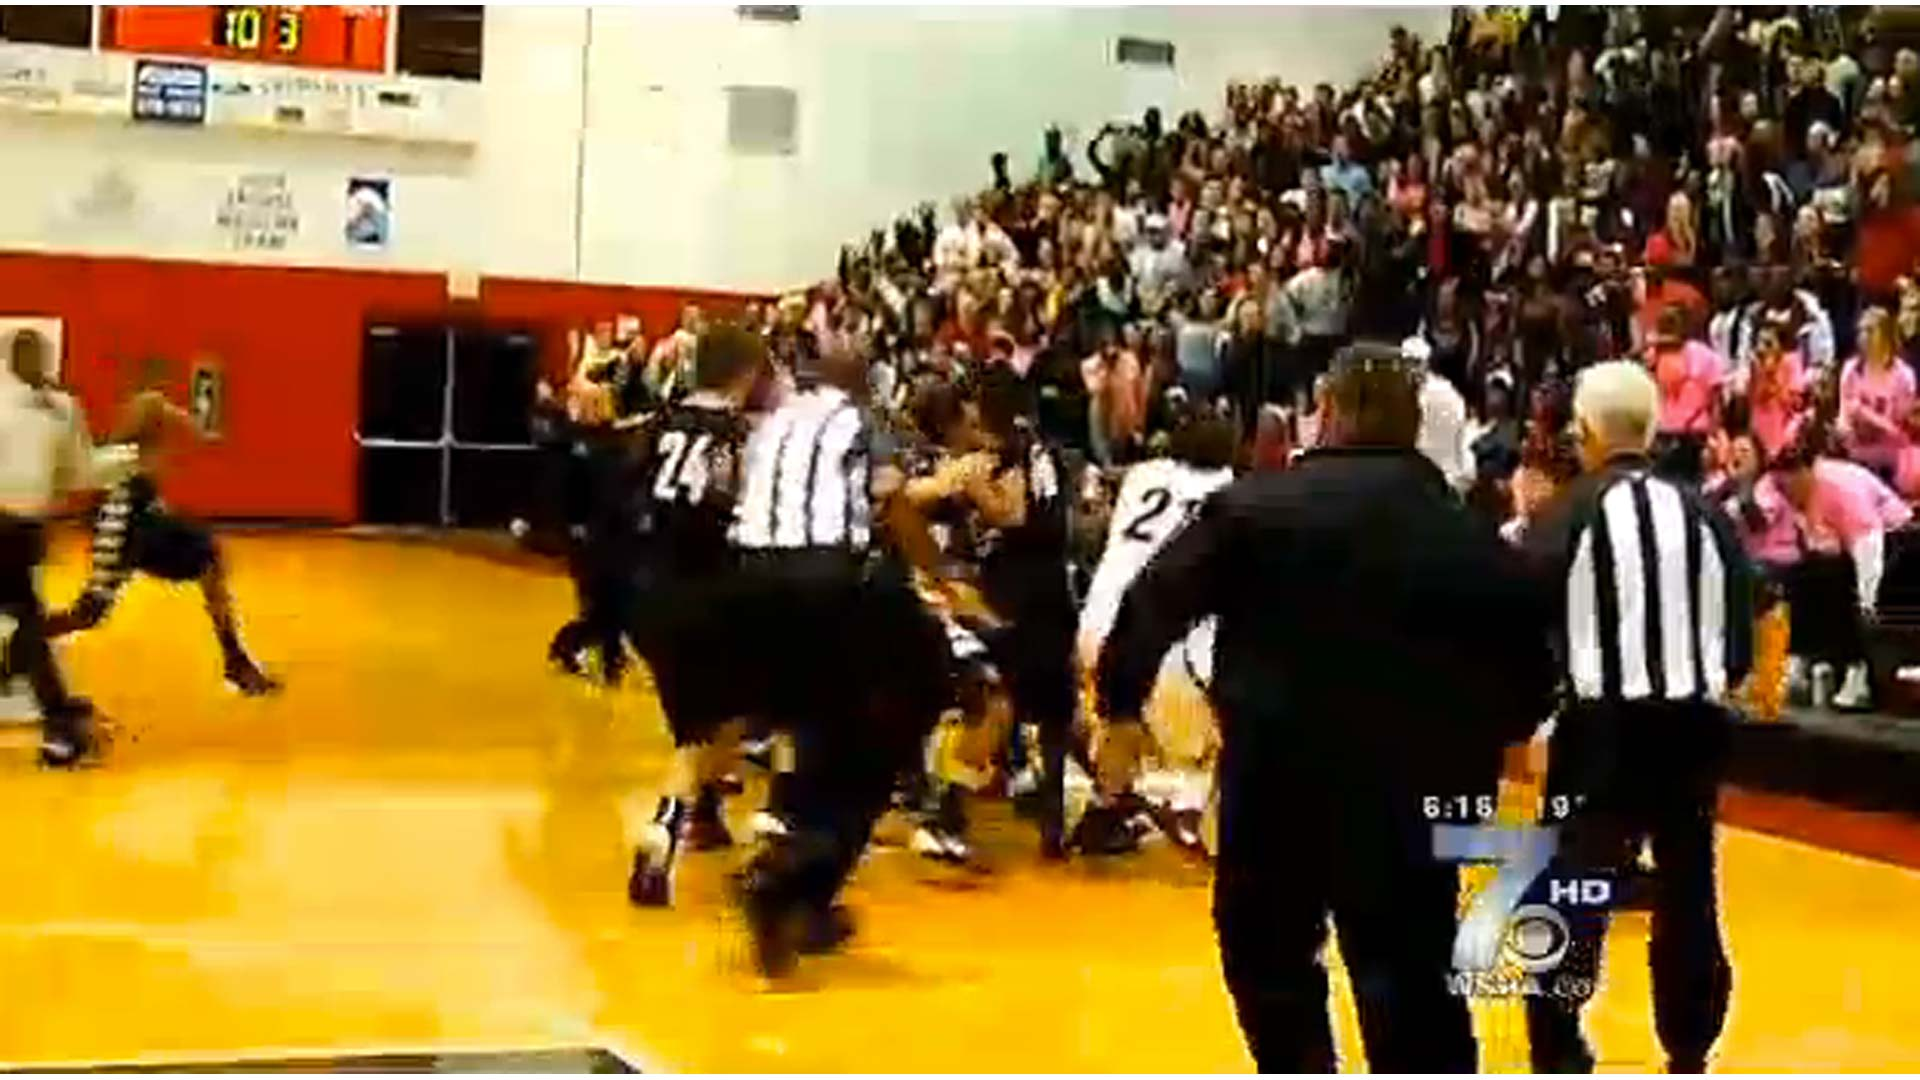 high-school-brawl-125145-wspa-ftr